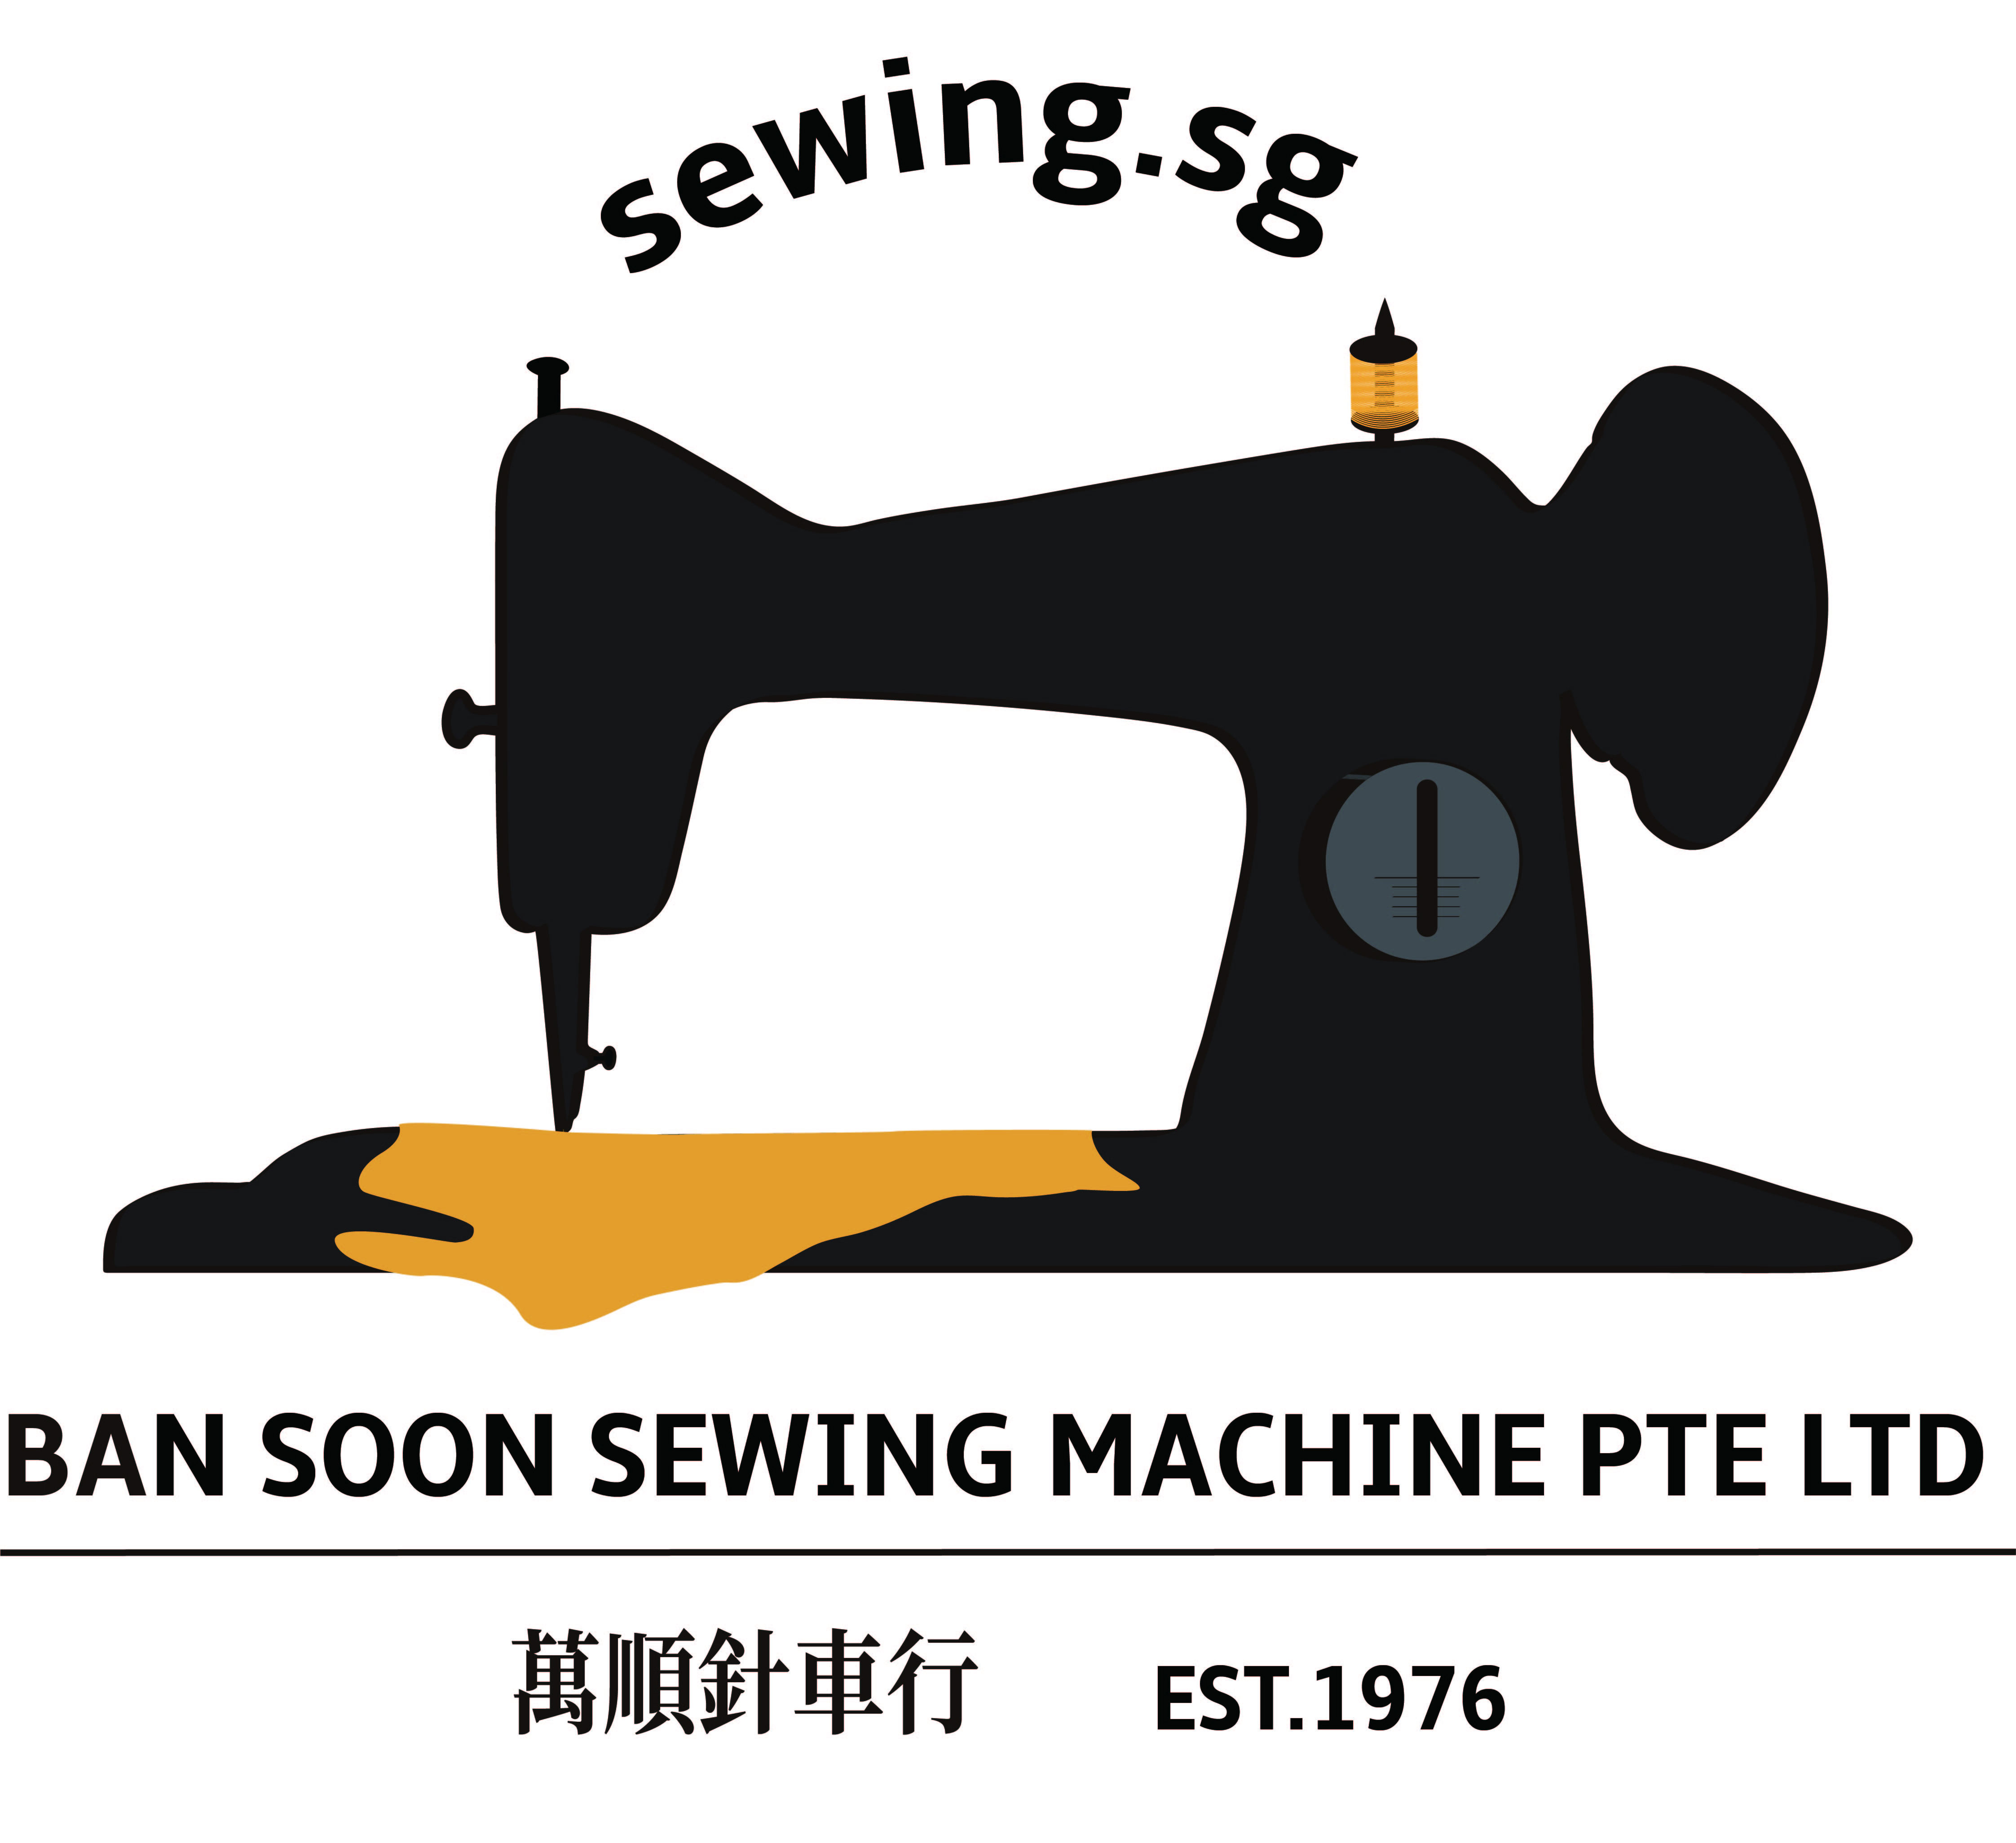 Ban Soon Sewing Machine Pte Ltd